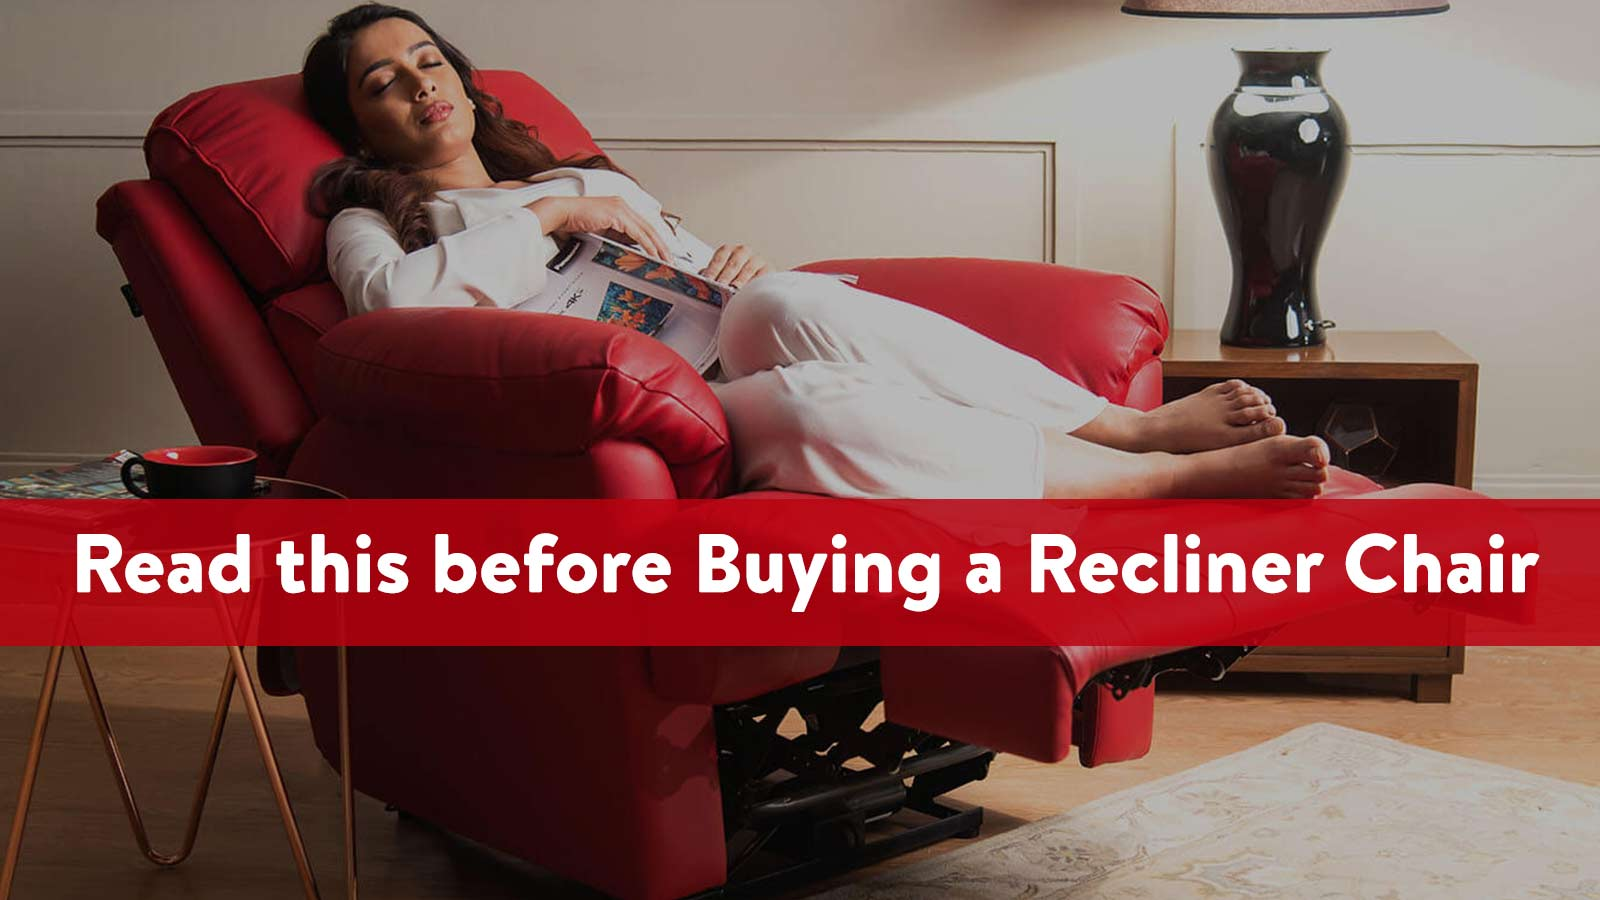 Read this before Buying a Recliner Chair